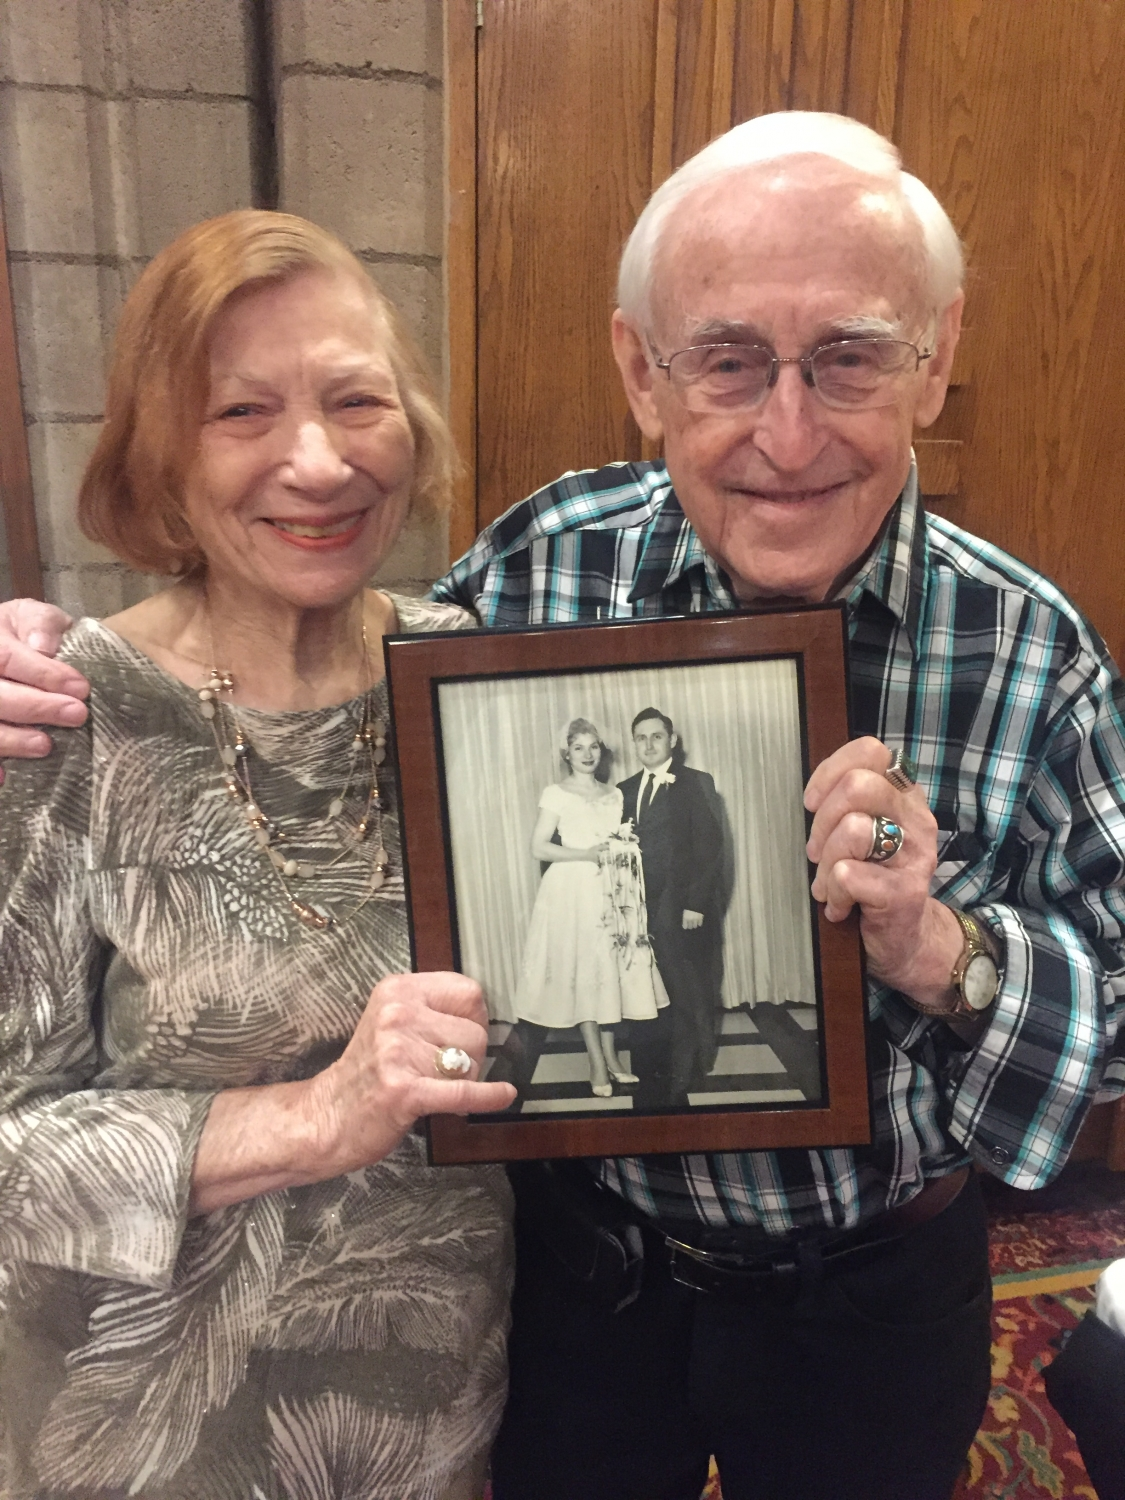 Dick and Judy Lovins holding their wedding photo